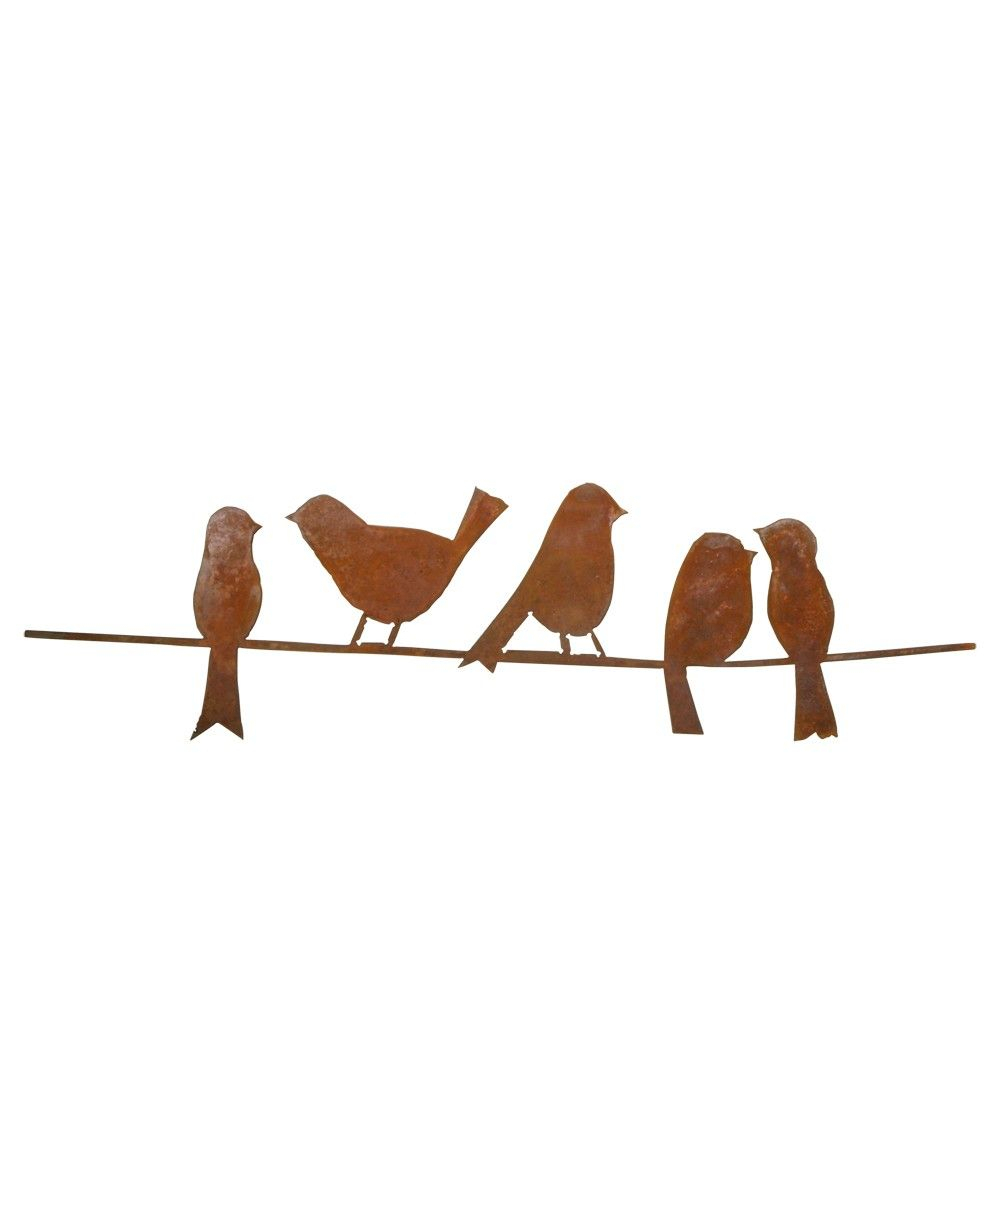 Famous Birds On A Wire Wall Decor intended for Birds On A Wire Simple